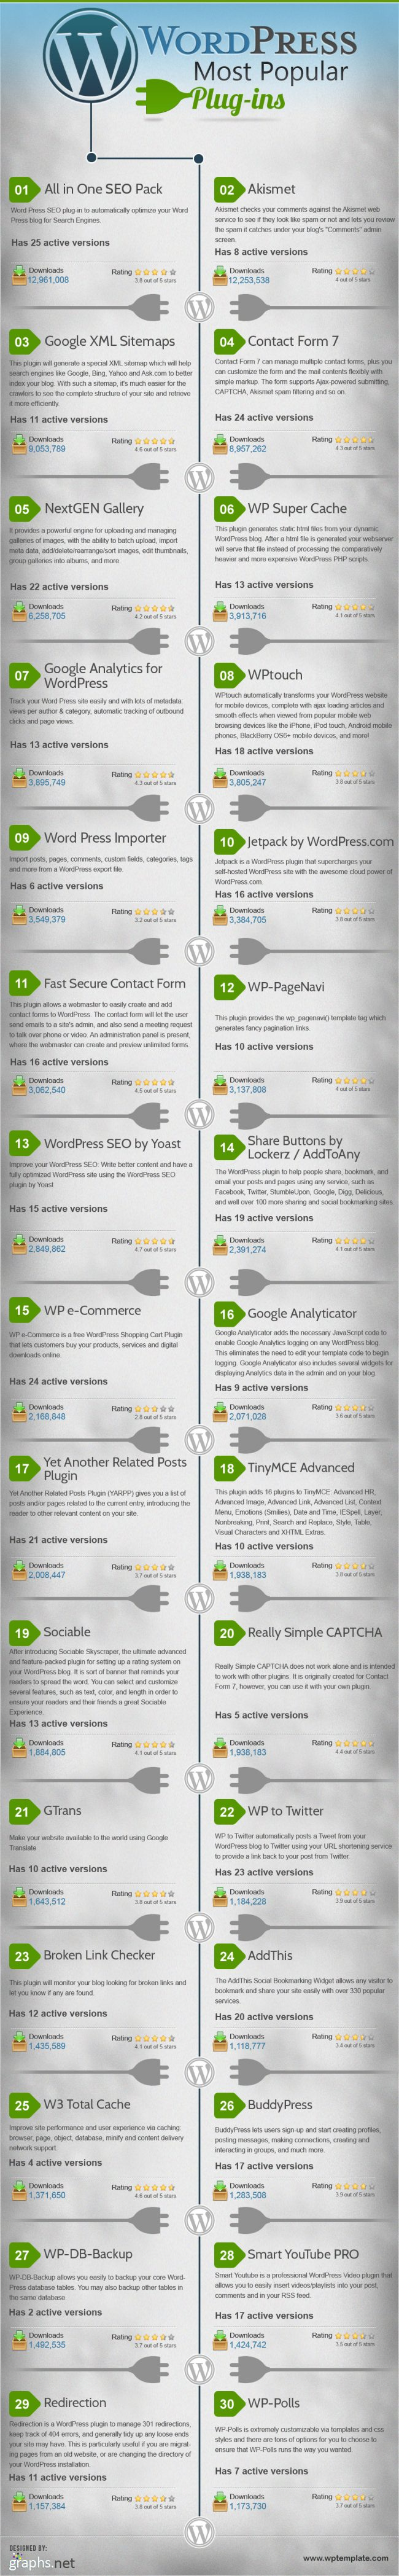 30 Most Popular WordPress Plugins for 2013 InfoGraph